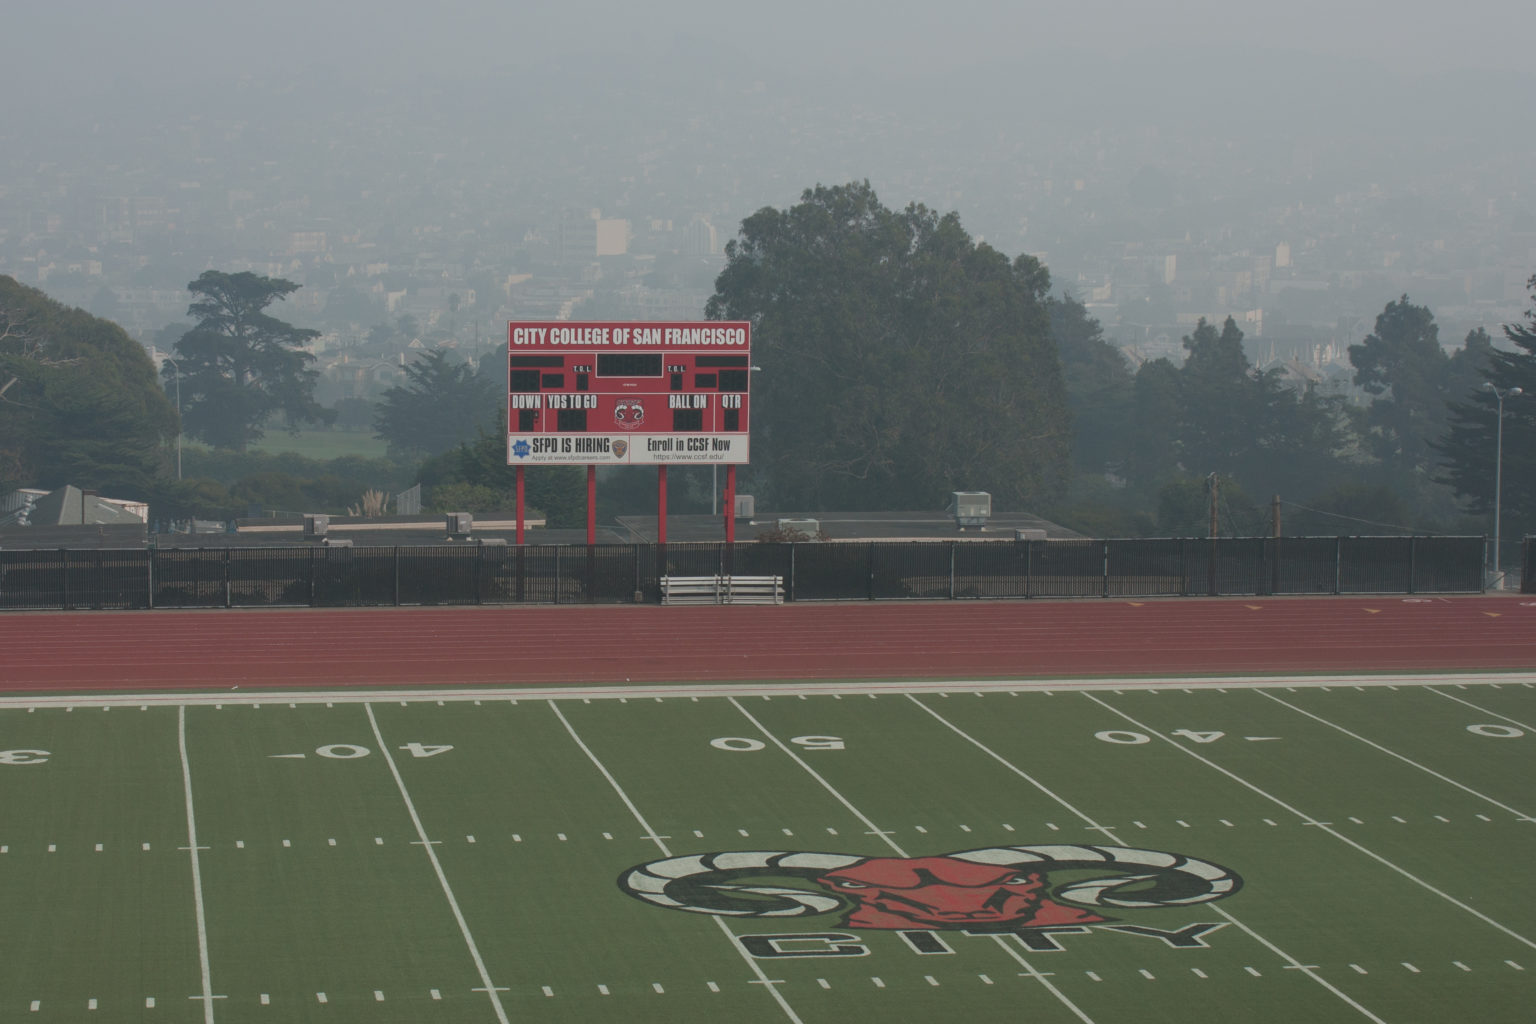 The George Rush Stadium remains nearly empty on Friday, Nov. 16, at City College of San Francisco, a day after the college closed due to compromised air quality. (David Mamaril Horowitz / Special to S.F. Examiner)